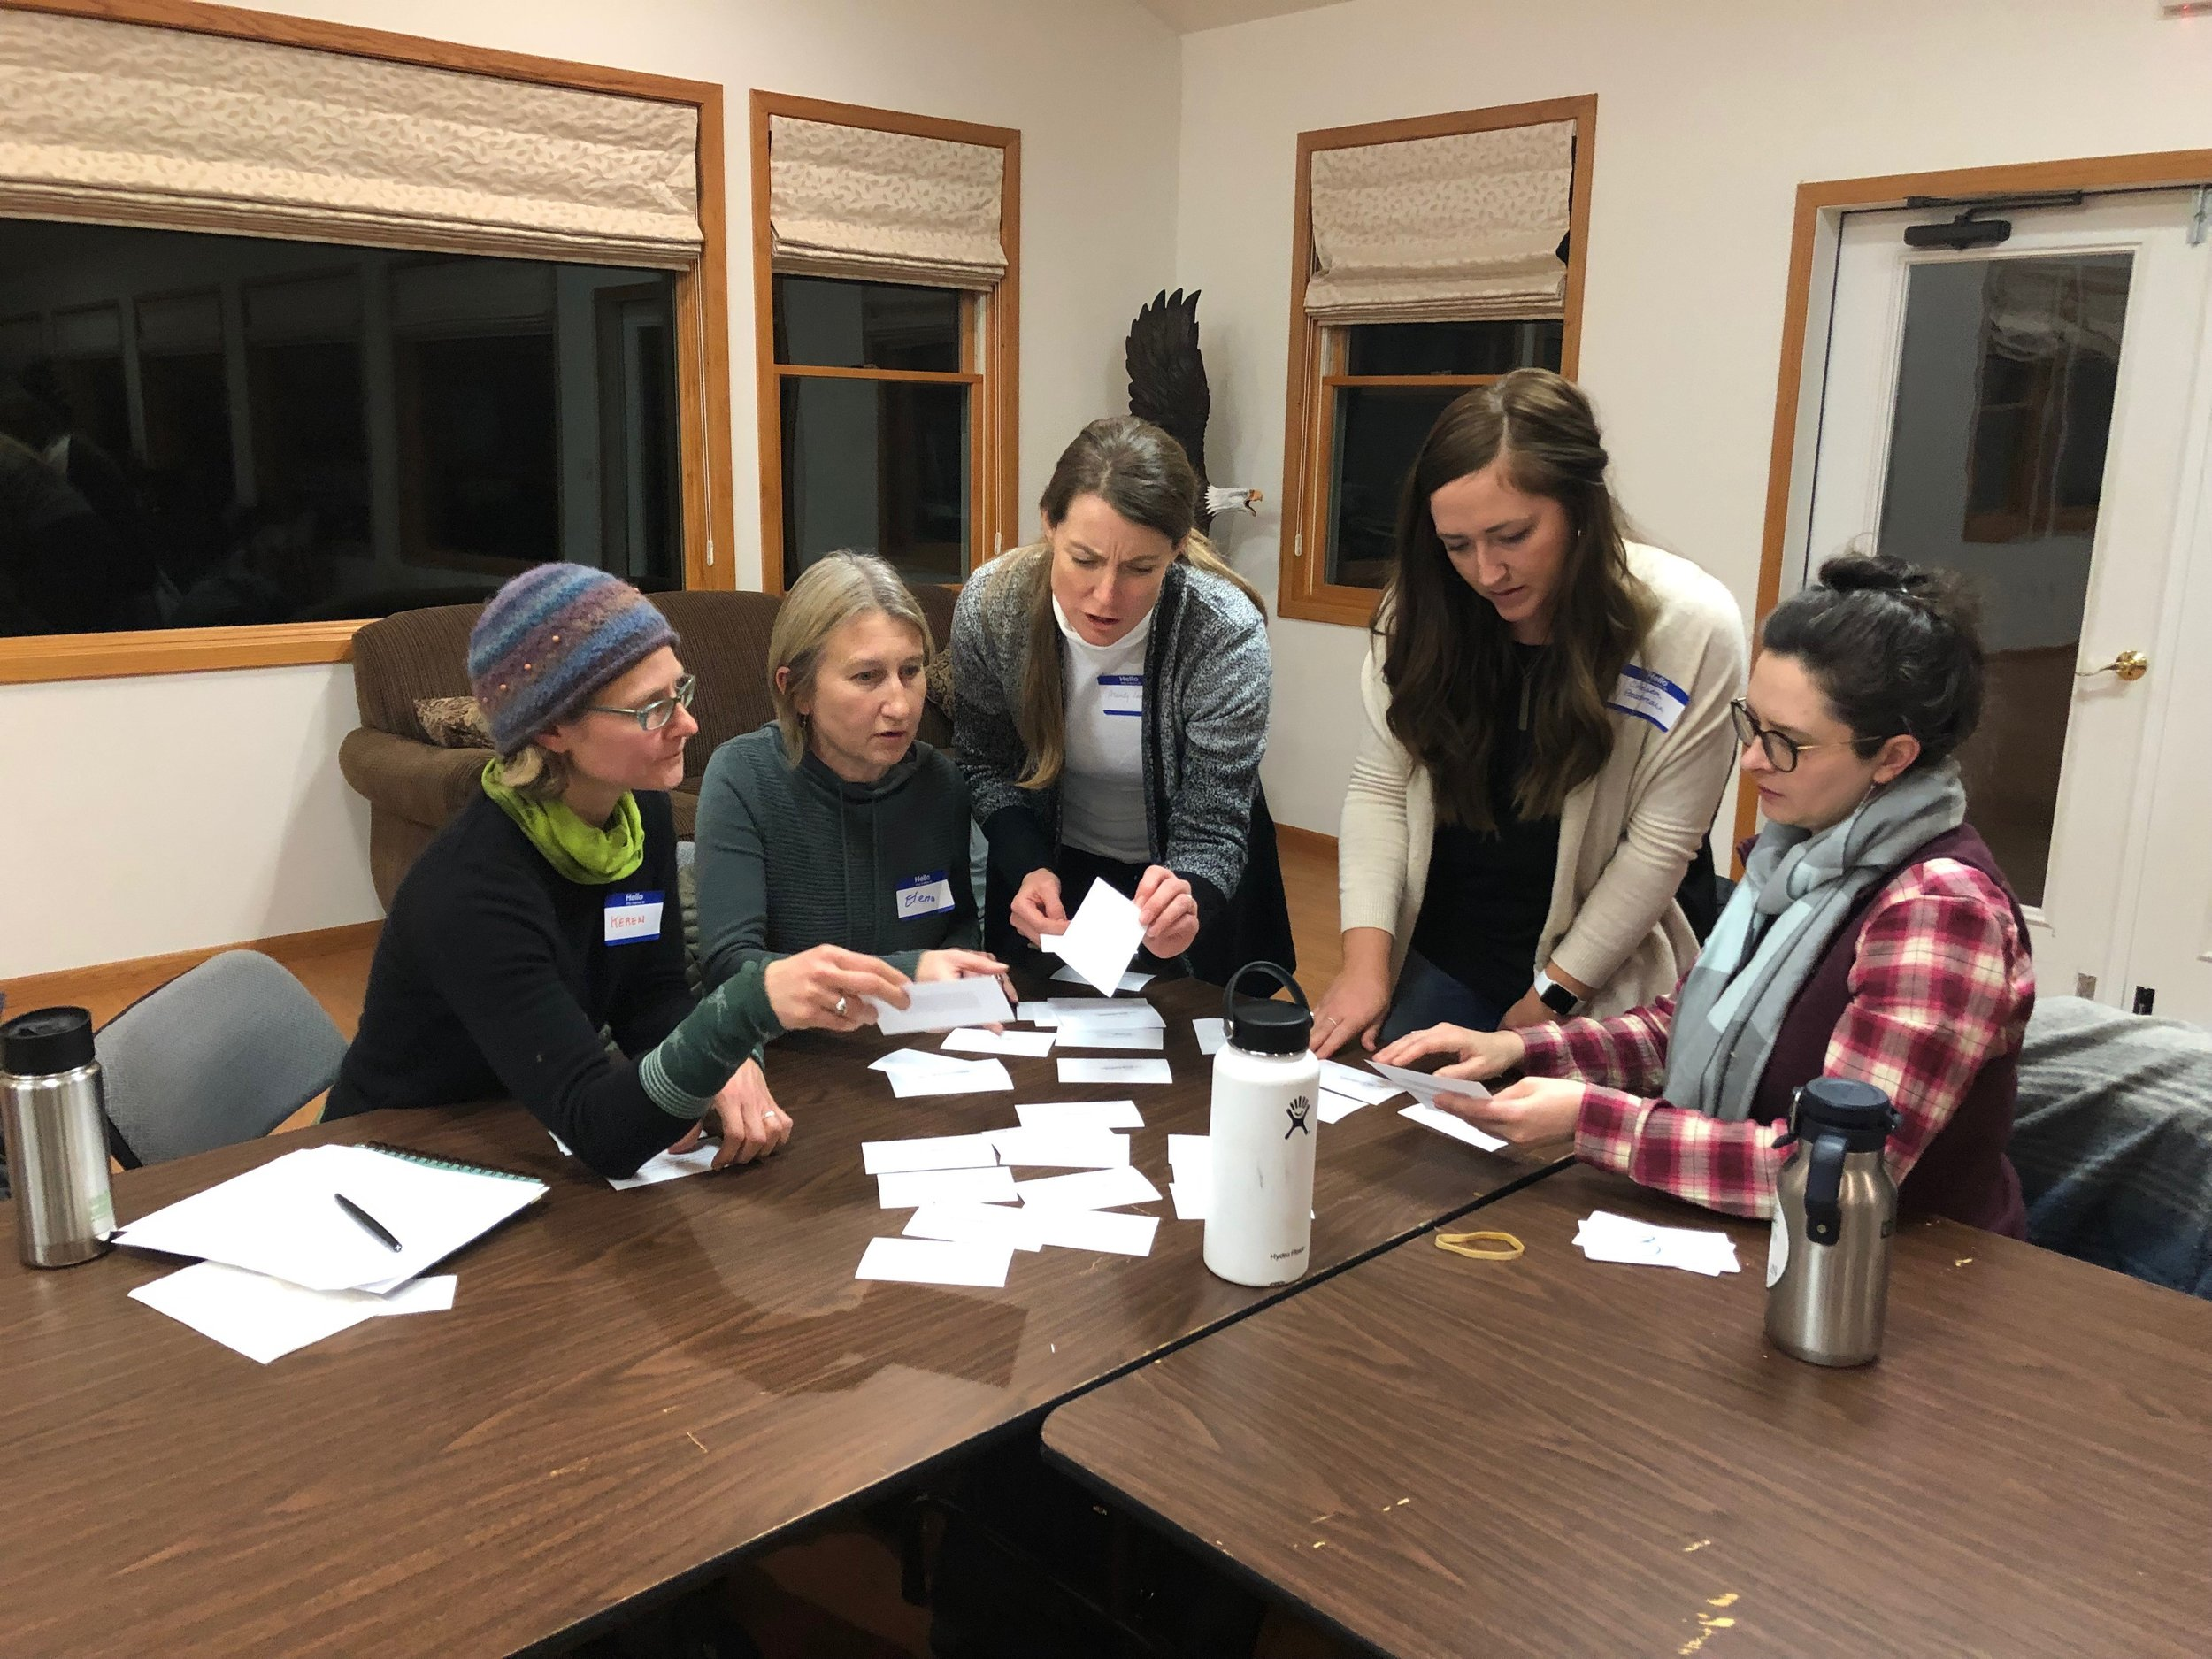 Take Action - Ready to engage in supporting local food systems? You and/or your organization can become active and contribute to food resiliency in the Western U.P.